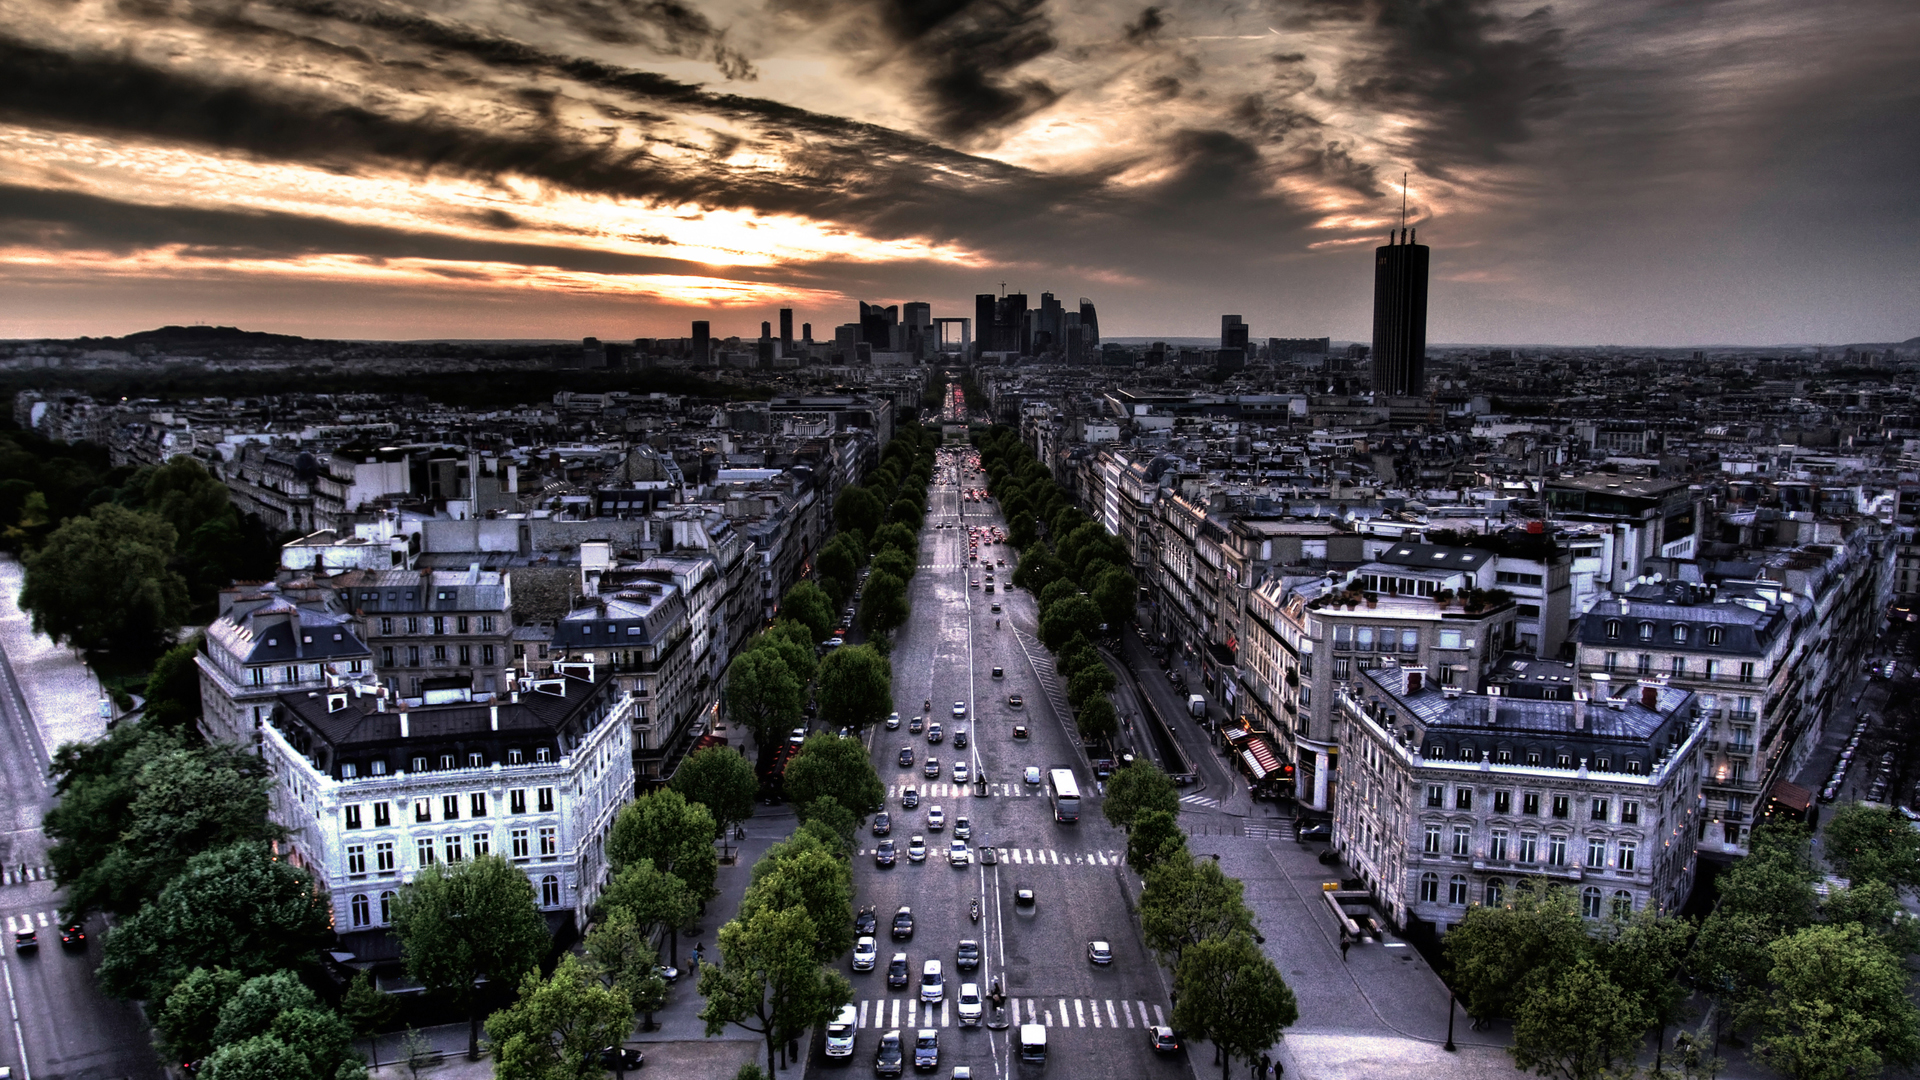 paris wallpaper background, wallpapers